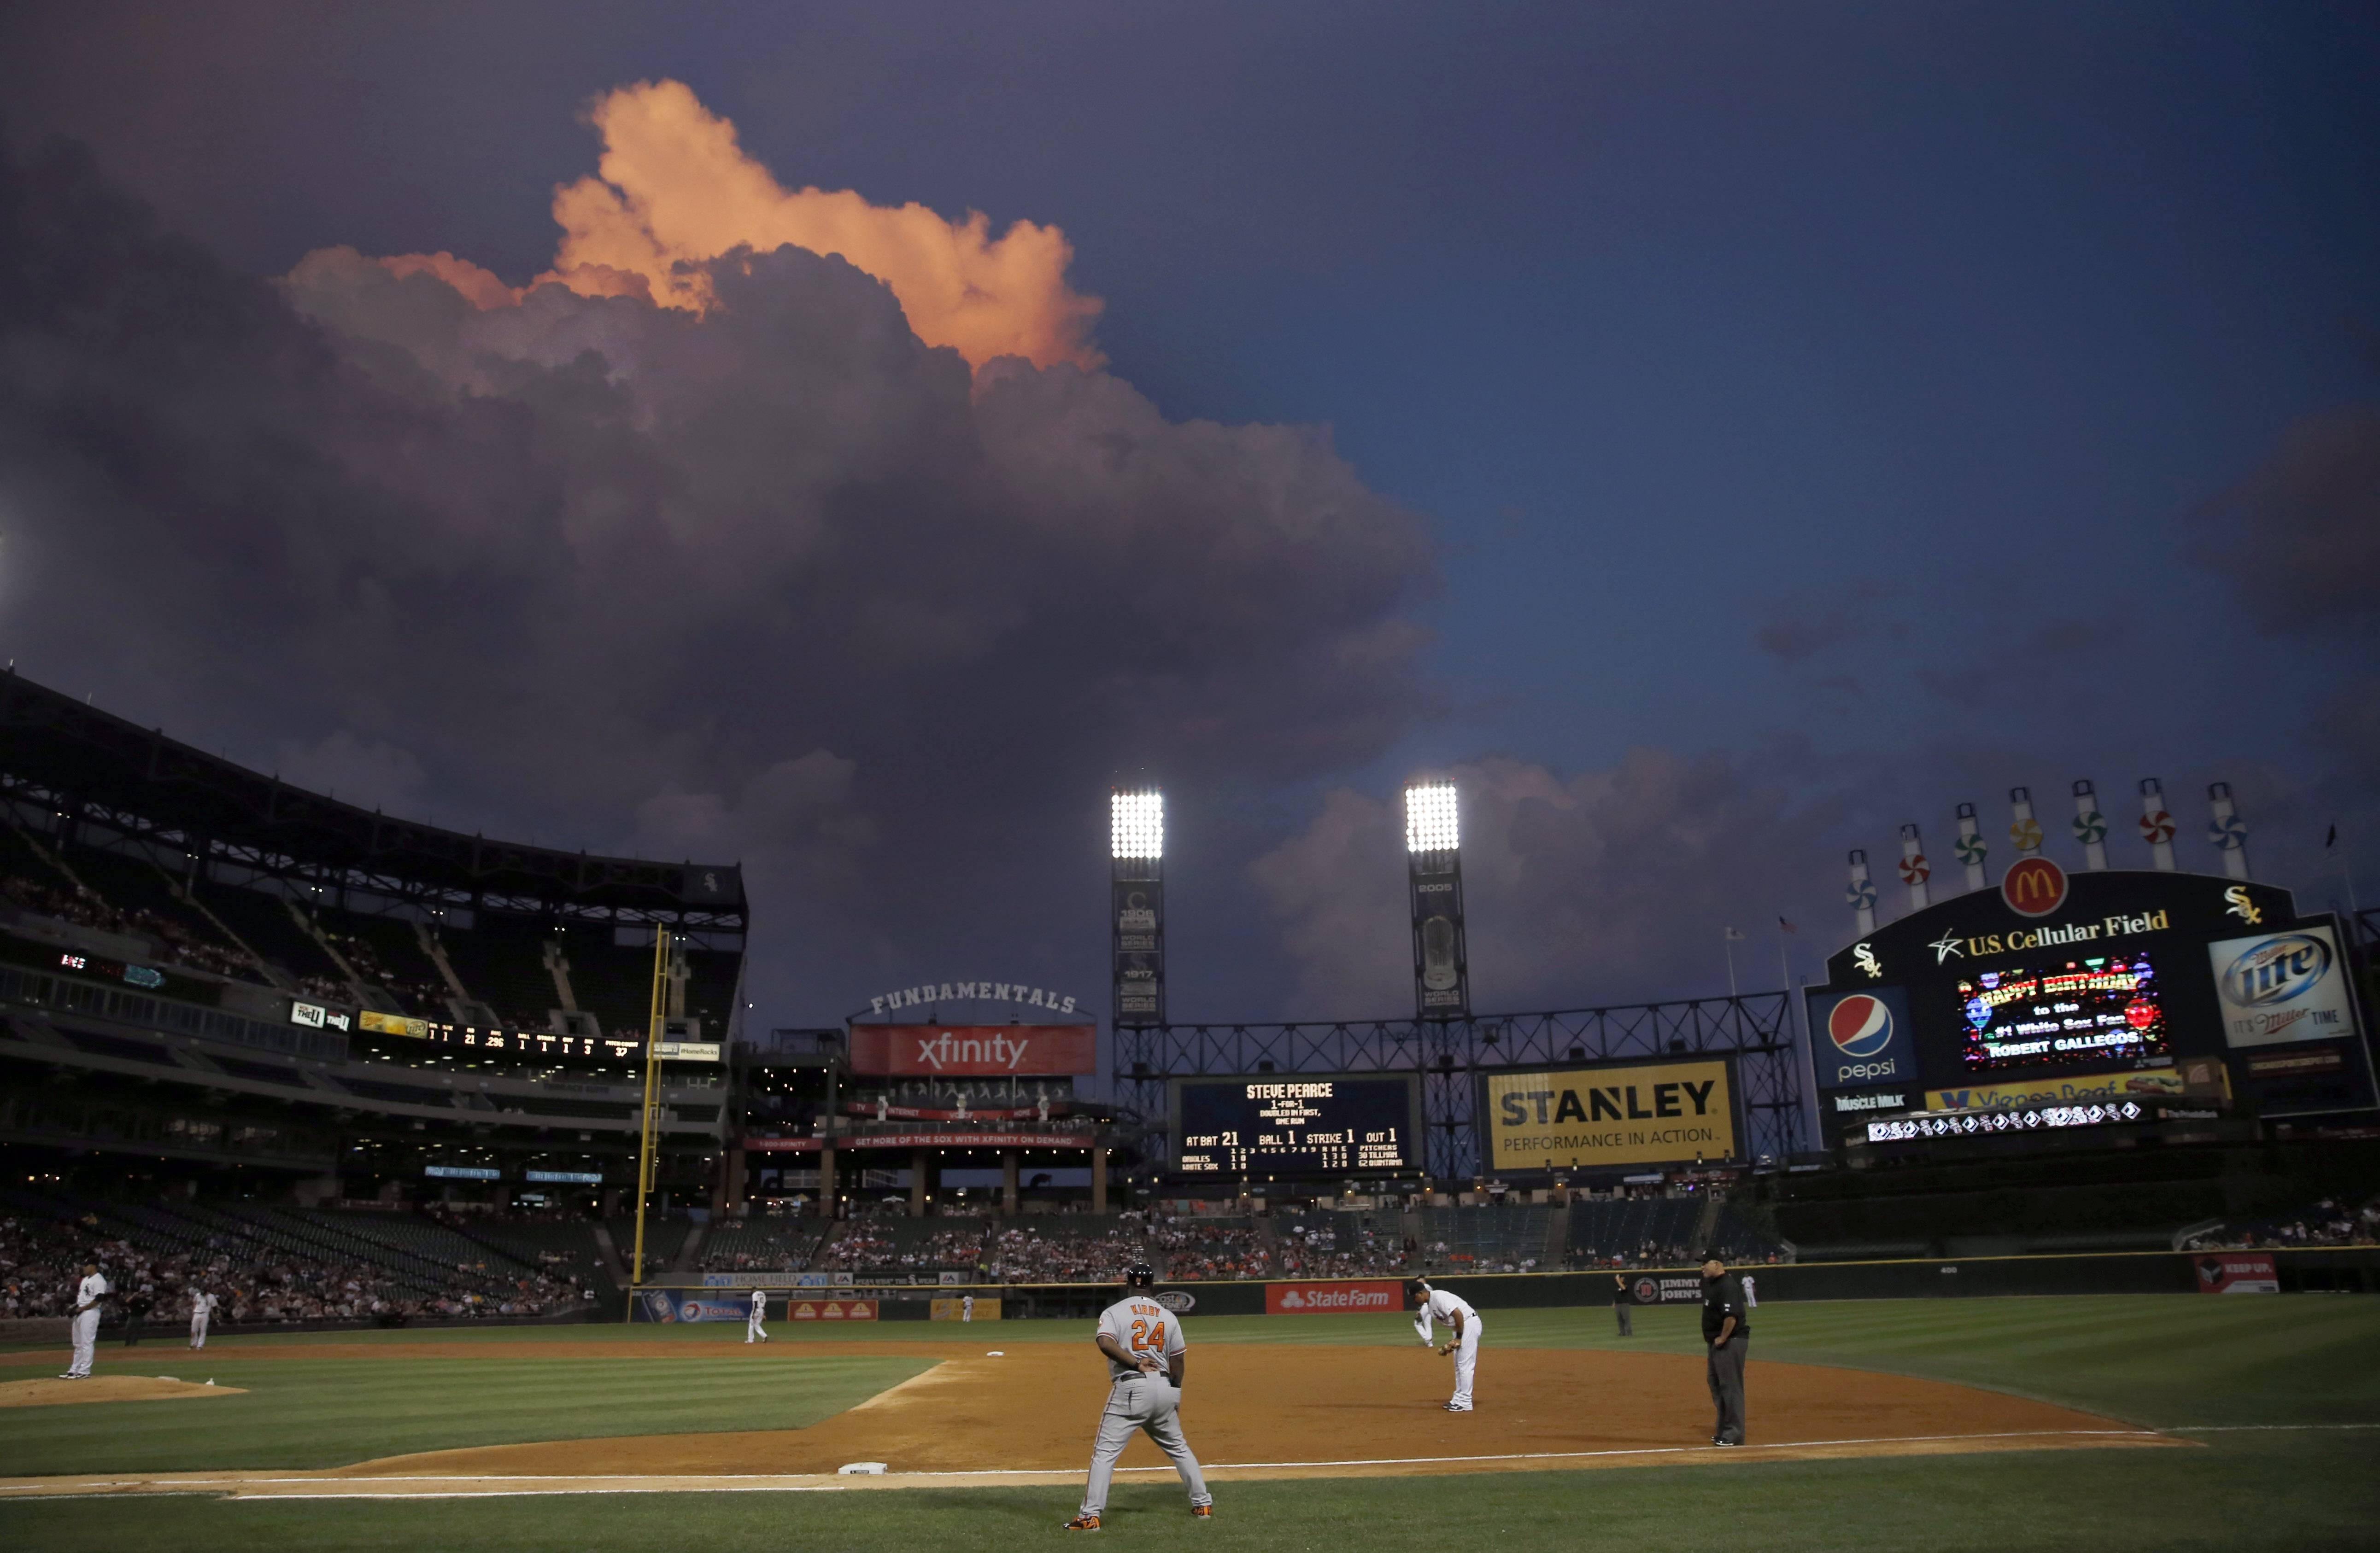 The setting sun lights up storm clouds as they drift over Lake Michigan near U.S. Cellular Field during the third inning of a baseball game between the Chicago White Sox and the Baltimore Orioles, Tuesday, Aug. 19, 2014, in Chicago.